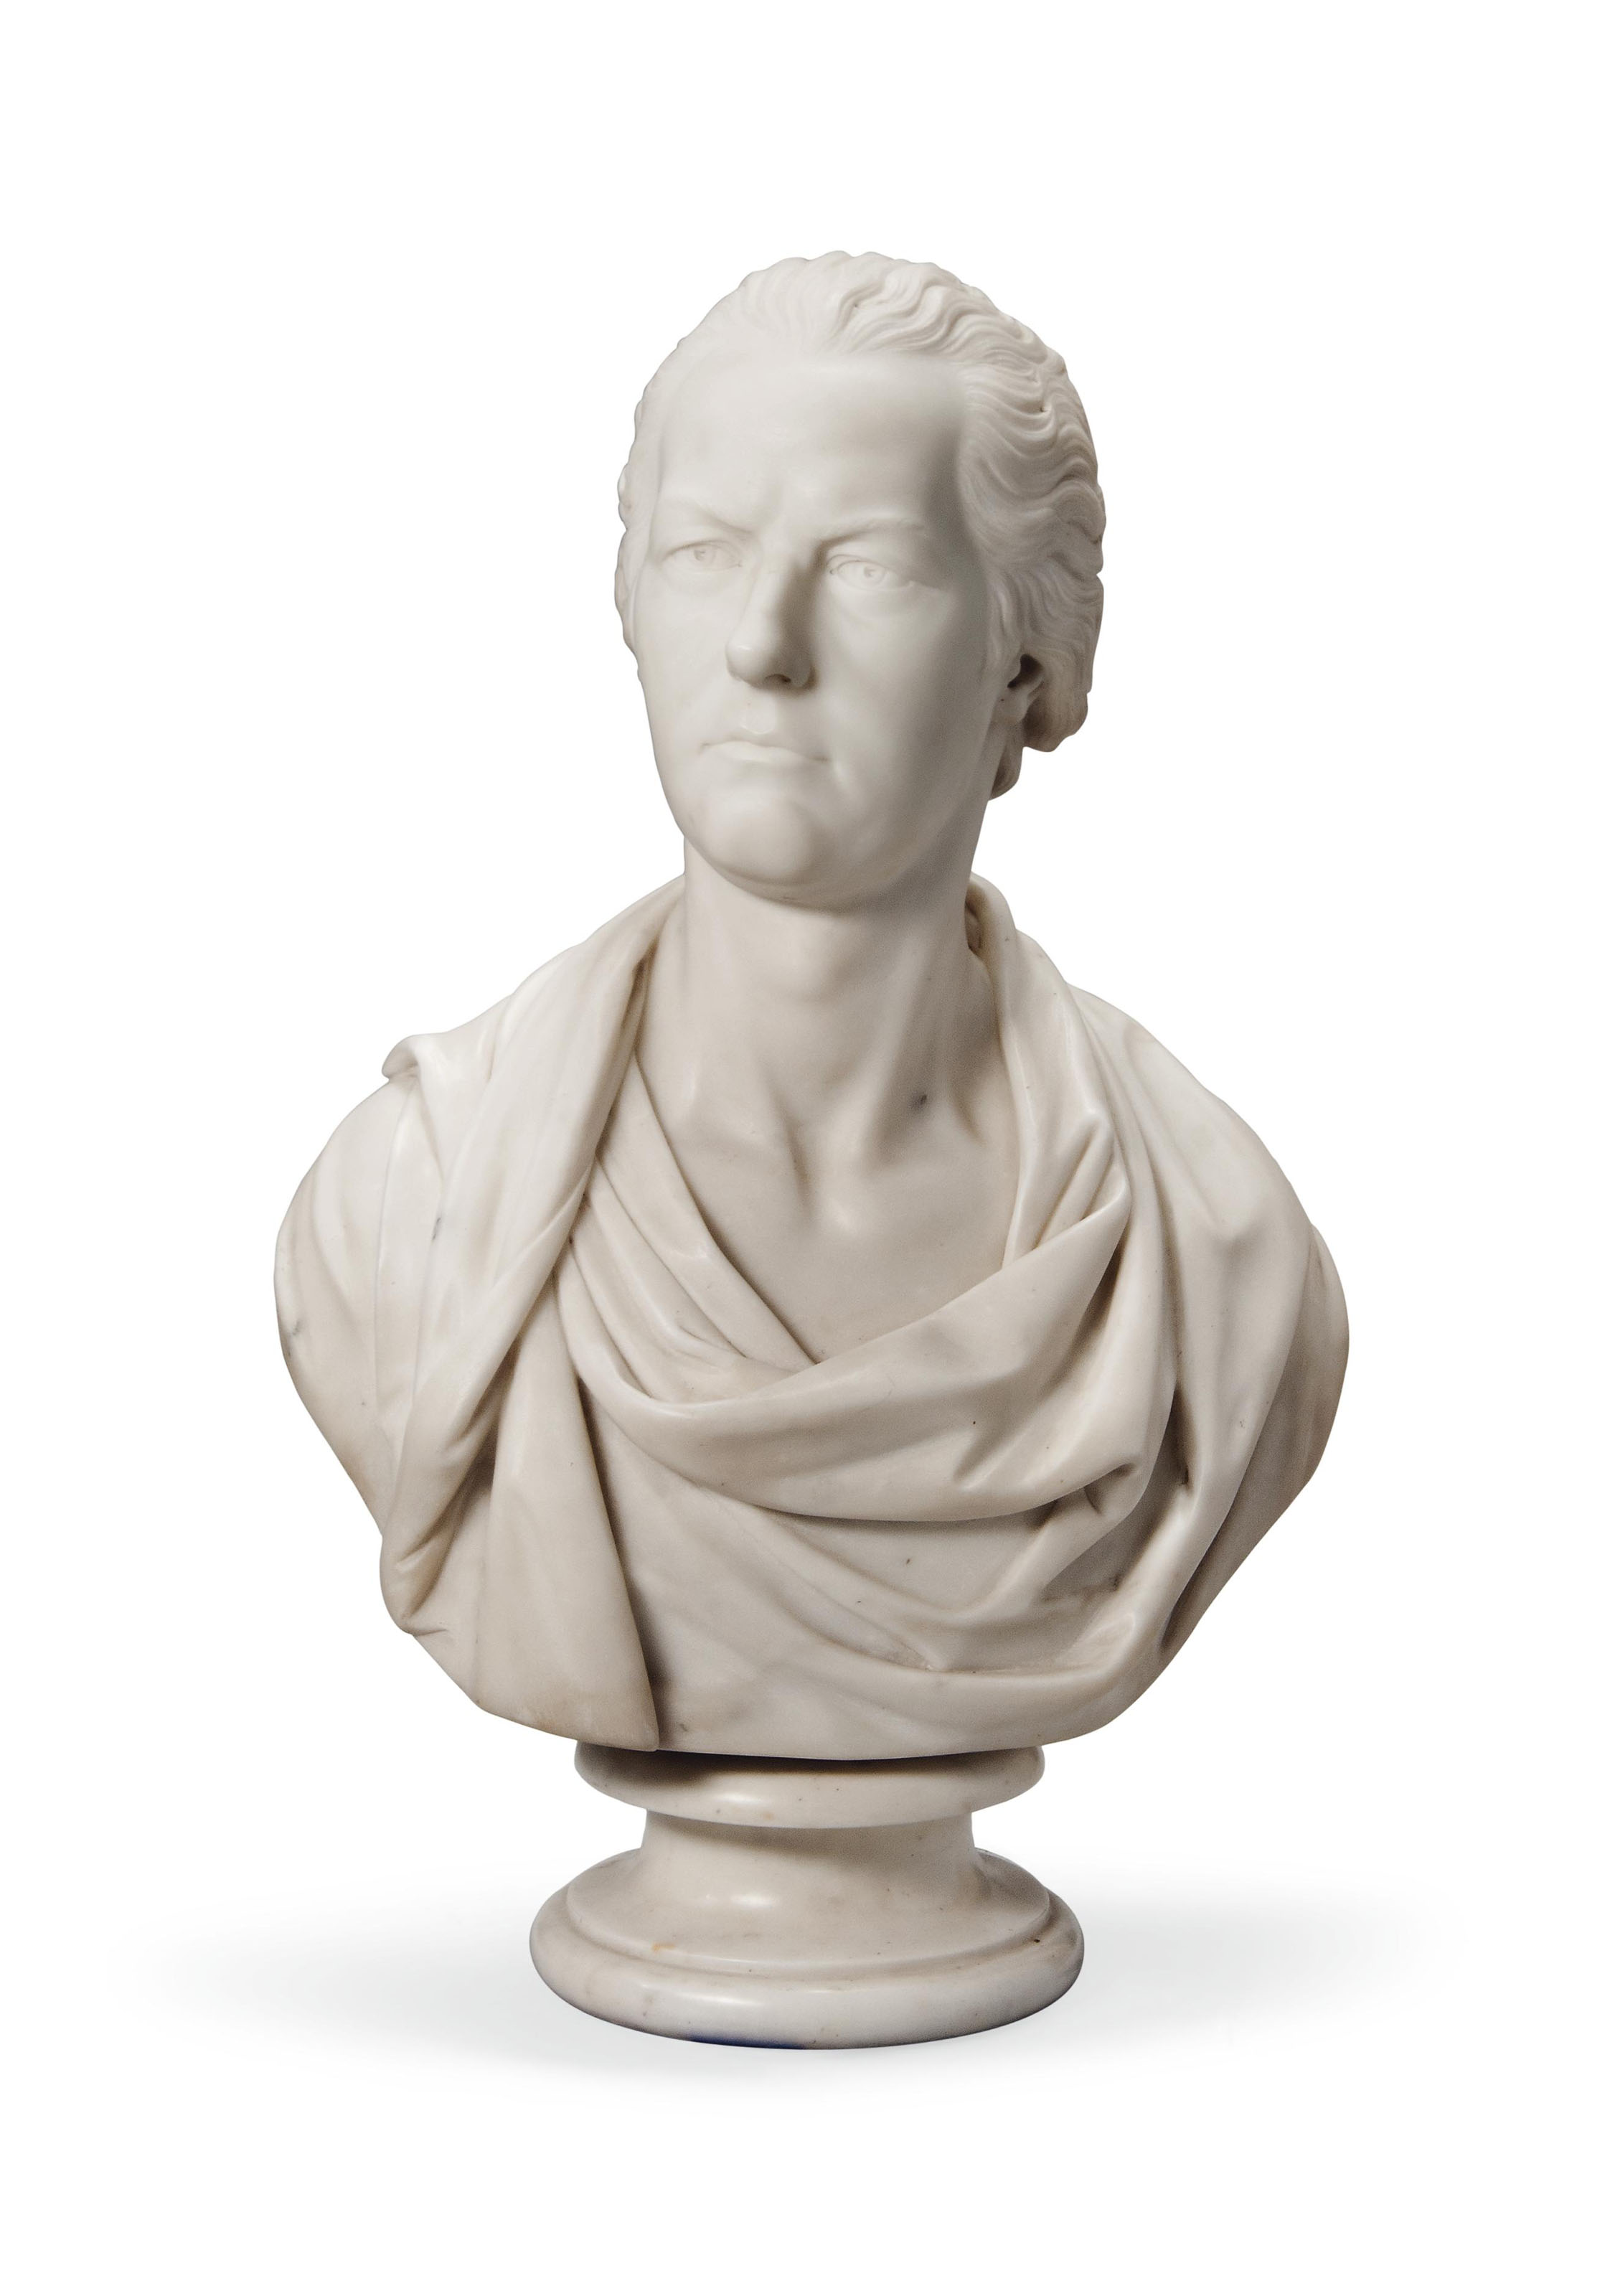 AN ENGLISH WHITE MARBLE BUST OF WILLIAM PITT THE YOUNGER